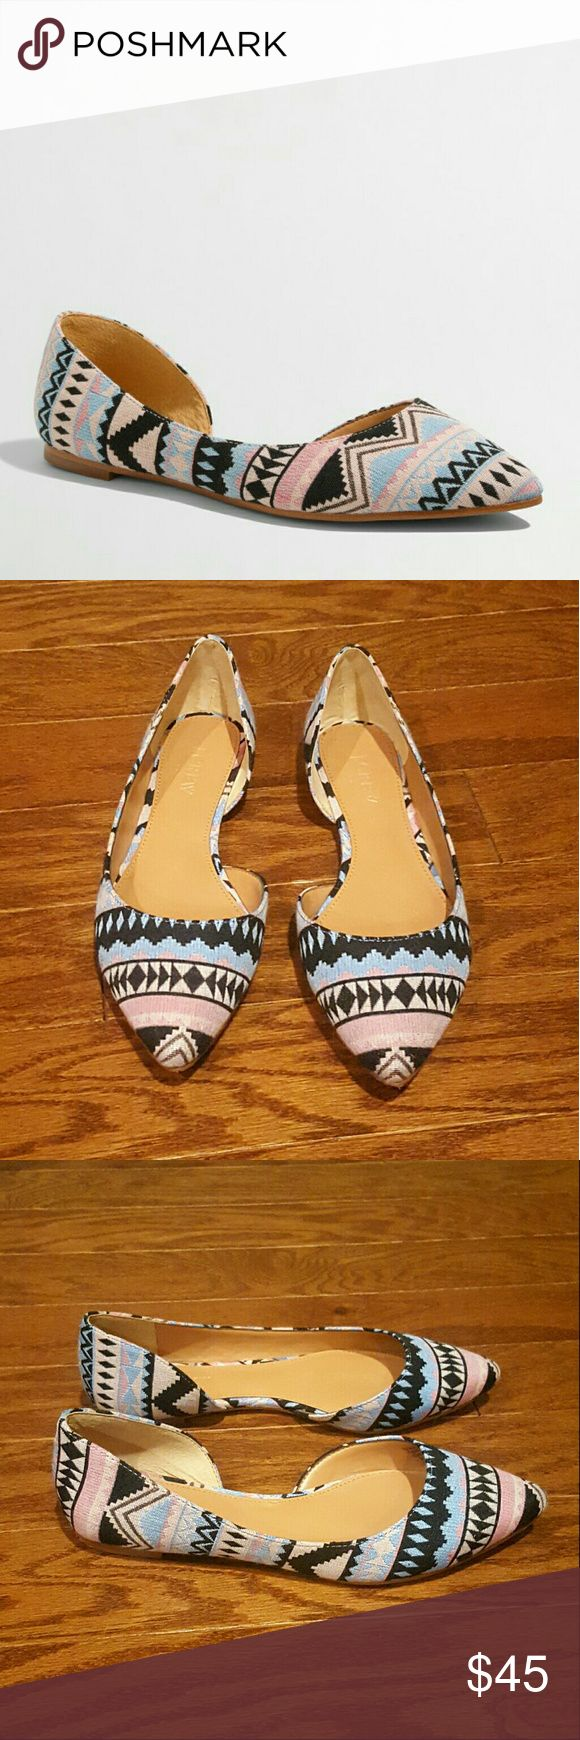 J Crew Factory- d'Orsay Flats in woven Aztec Super cute J Crew flats in size 7.  Great with summer outfits.  Worn out of the house maybe twice.     Fabric upper. Reconstituted leather sole. J. Crew Shoes Flats & Loafers